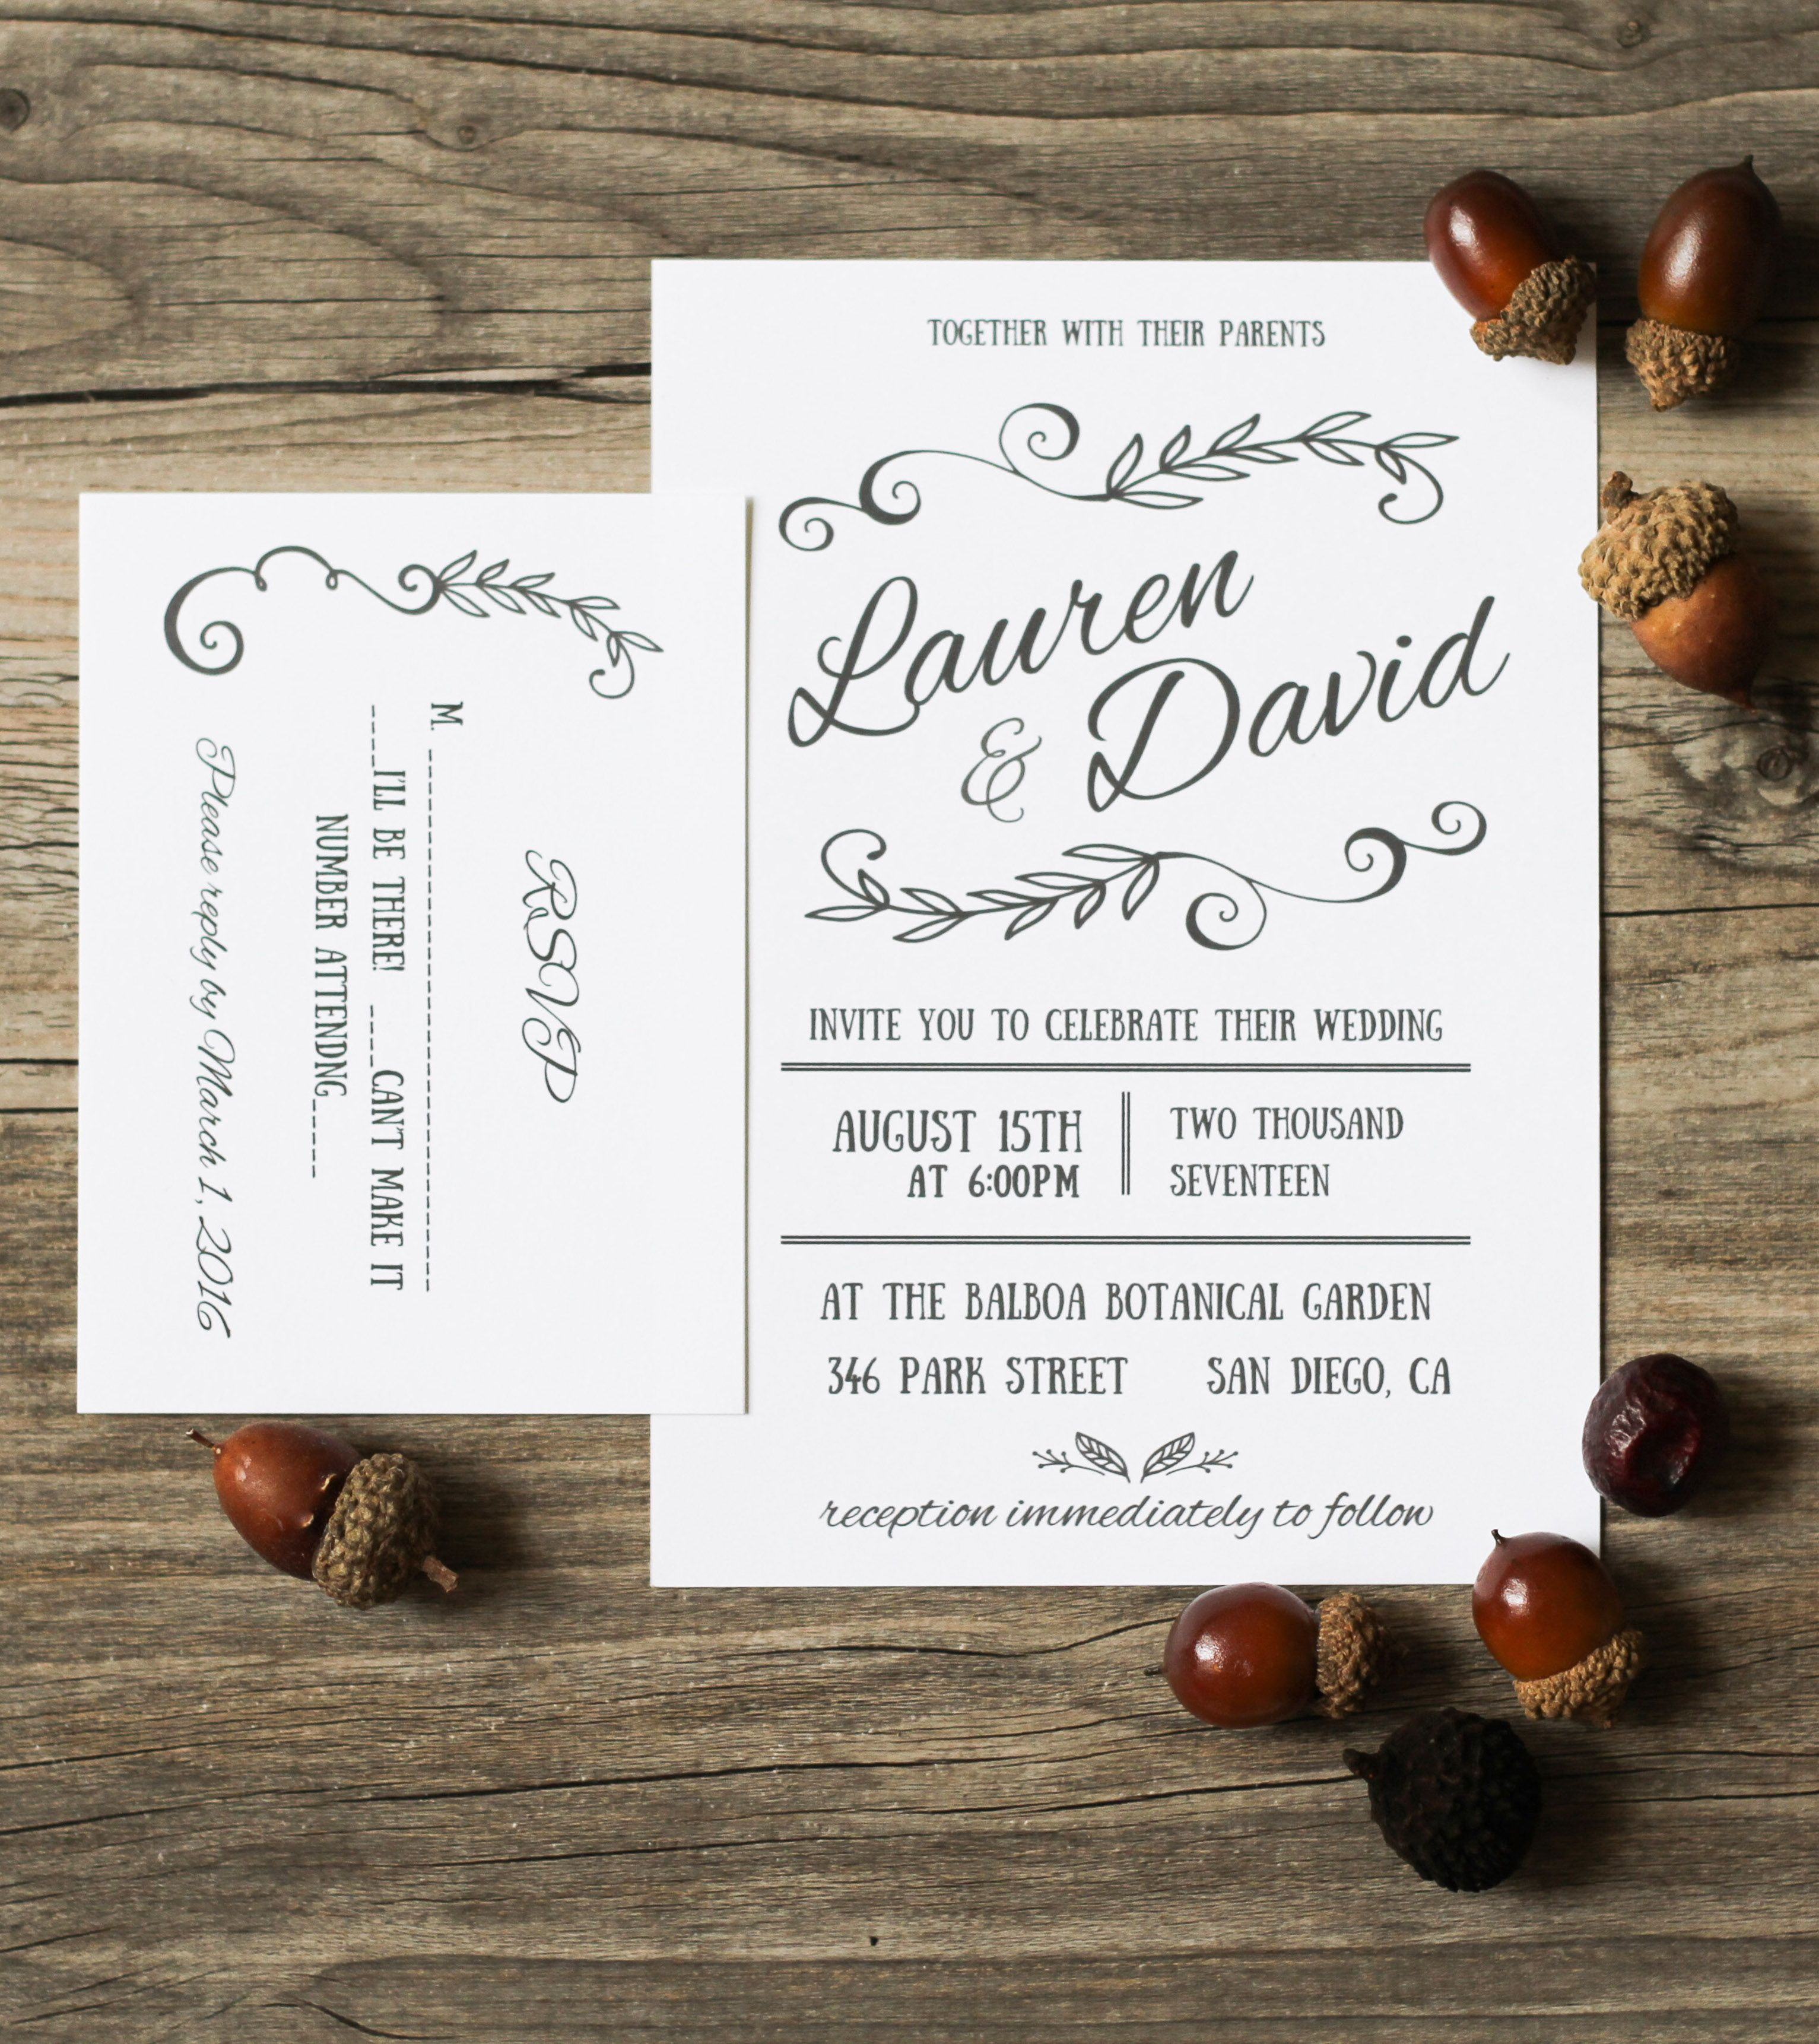 005 Remarkable Microsoft Word Invitation Template High Resolution  Templates Baby Shower Free Graduation Announcement For WeddingFull